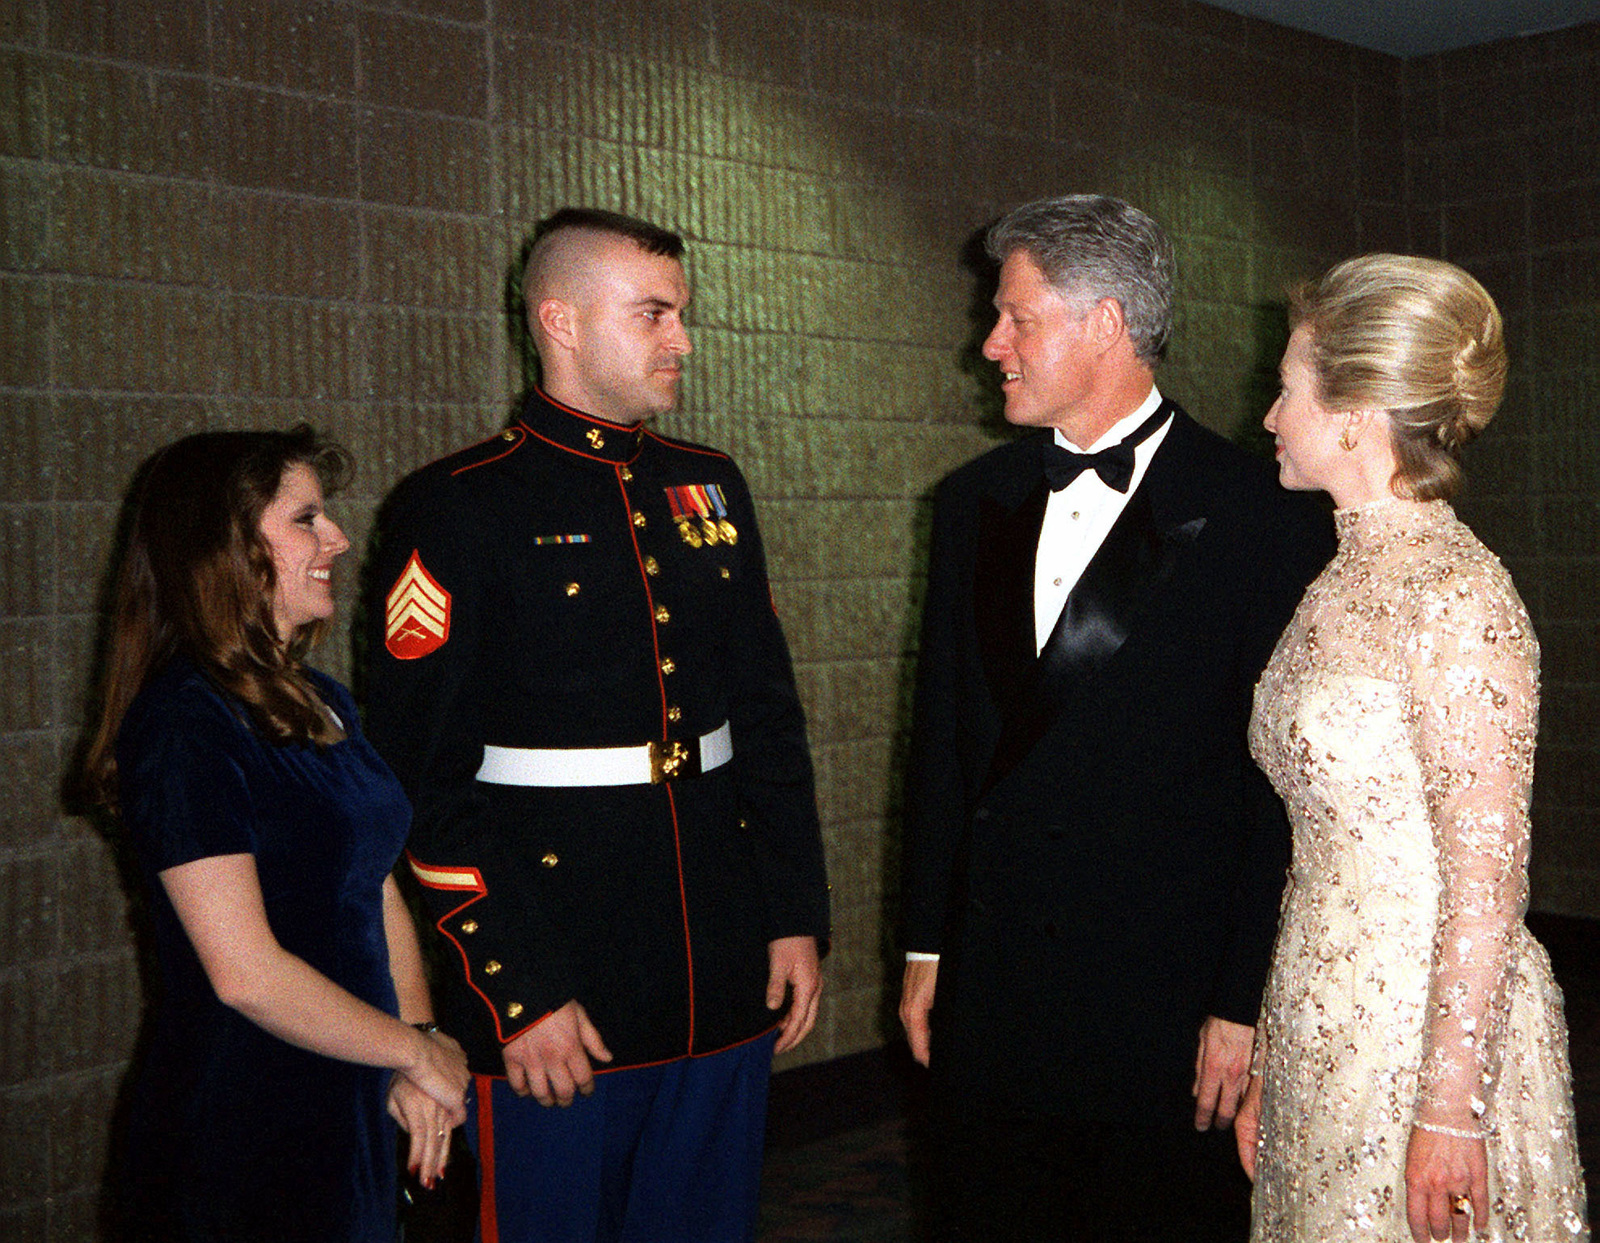 President William Jefferson Clinton and First Lady Hillary Rodham Clinton meet US Marine Corps Sergeant Heath Kuhlmann and his wife Monica at the Arkansas Ball. Kuhlmann stood in for the president during the January 12 dress rehearsal of the 1997 Presidential Inaugural Swearing-in Ceremony